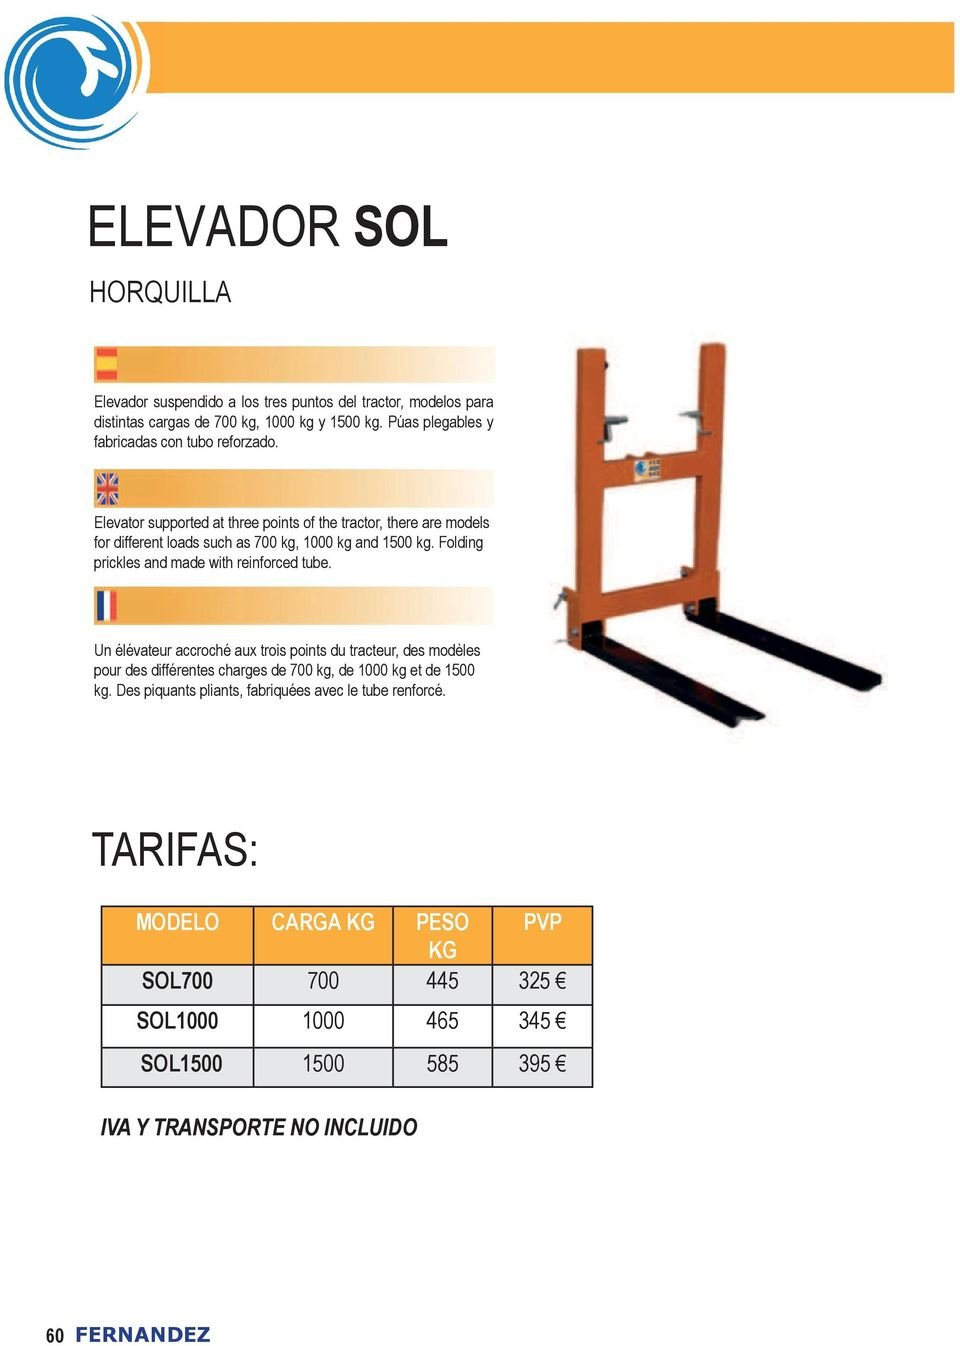 Elevator supported at three points of the tractor, there are models for different loads such as 700 kg, 1000 kg and 1500 kg.